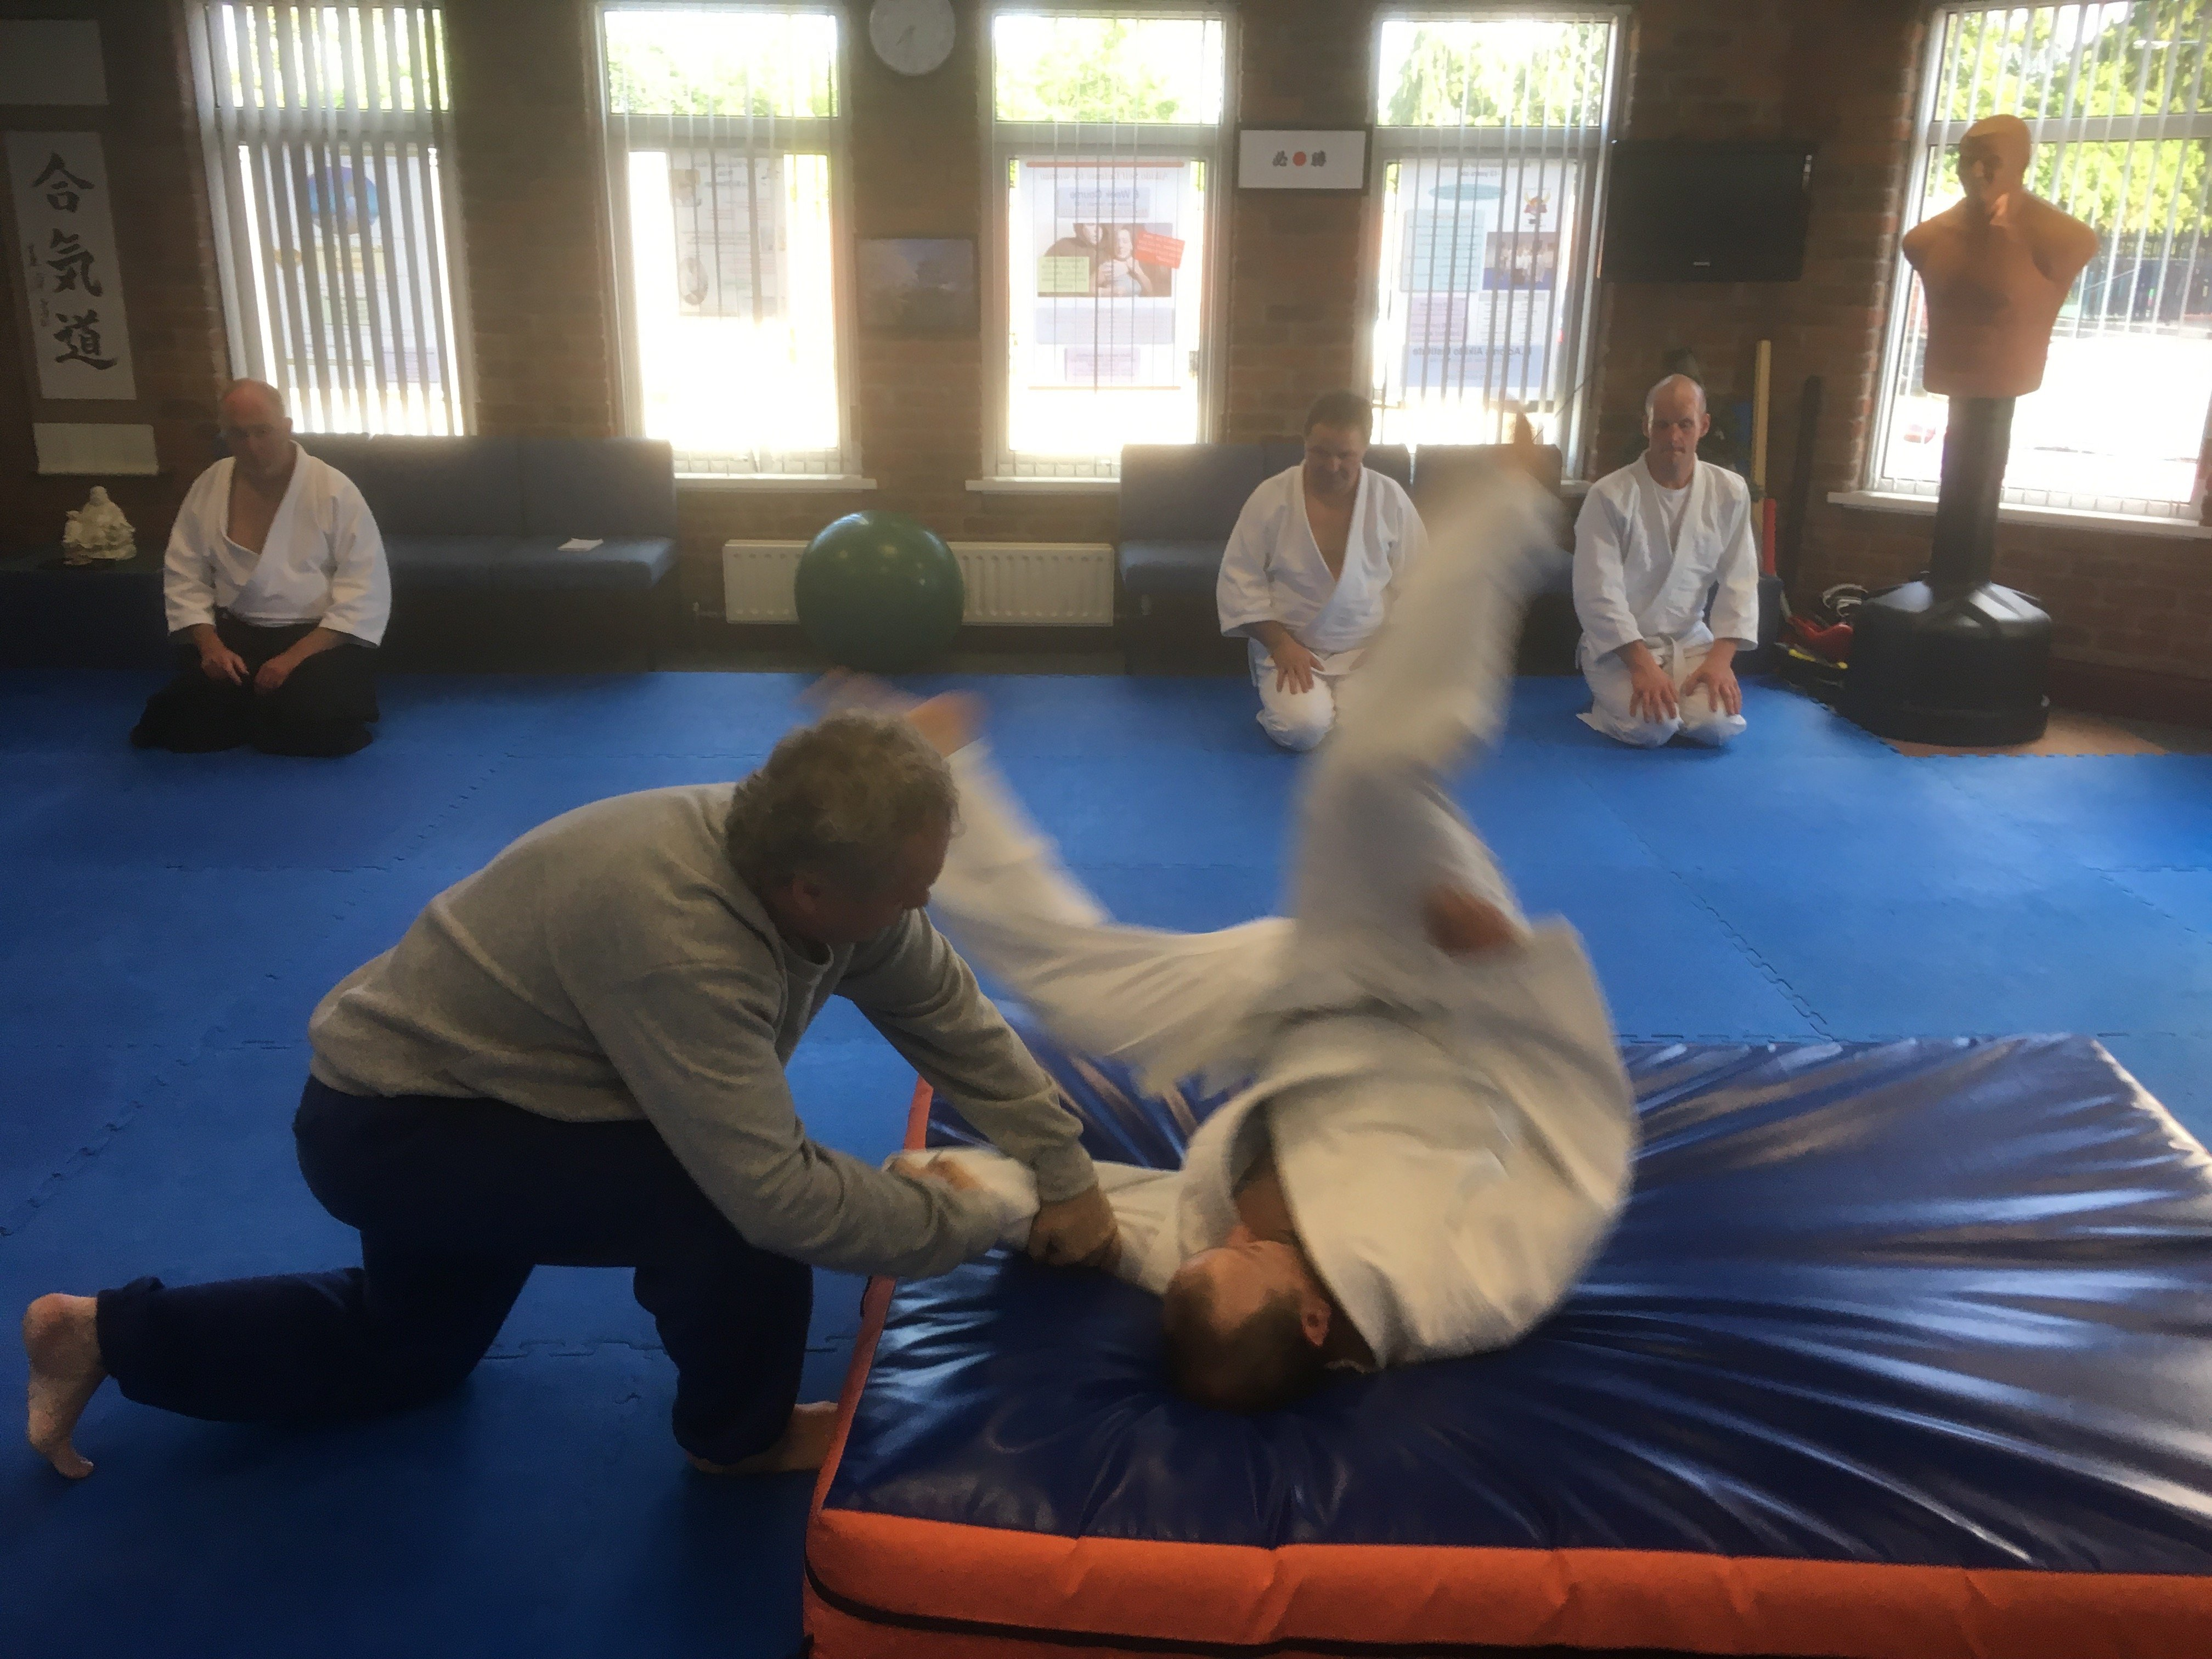 Two students practicing aikido moves